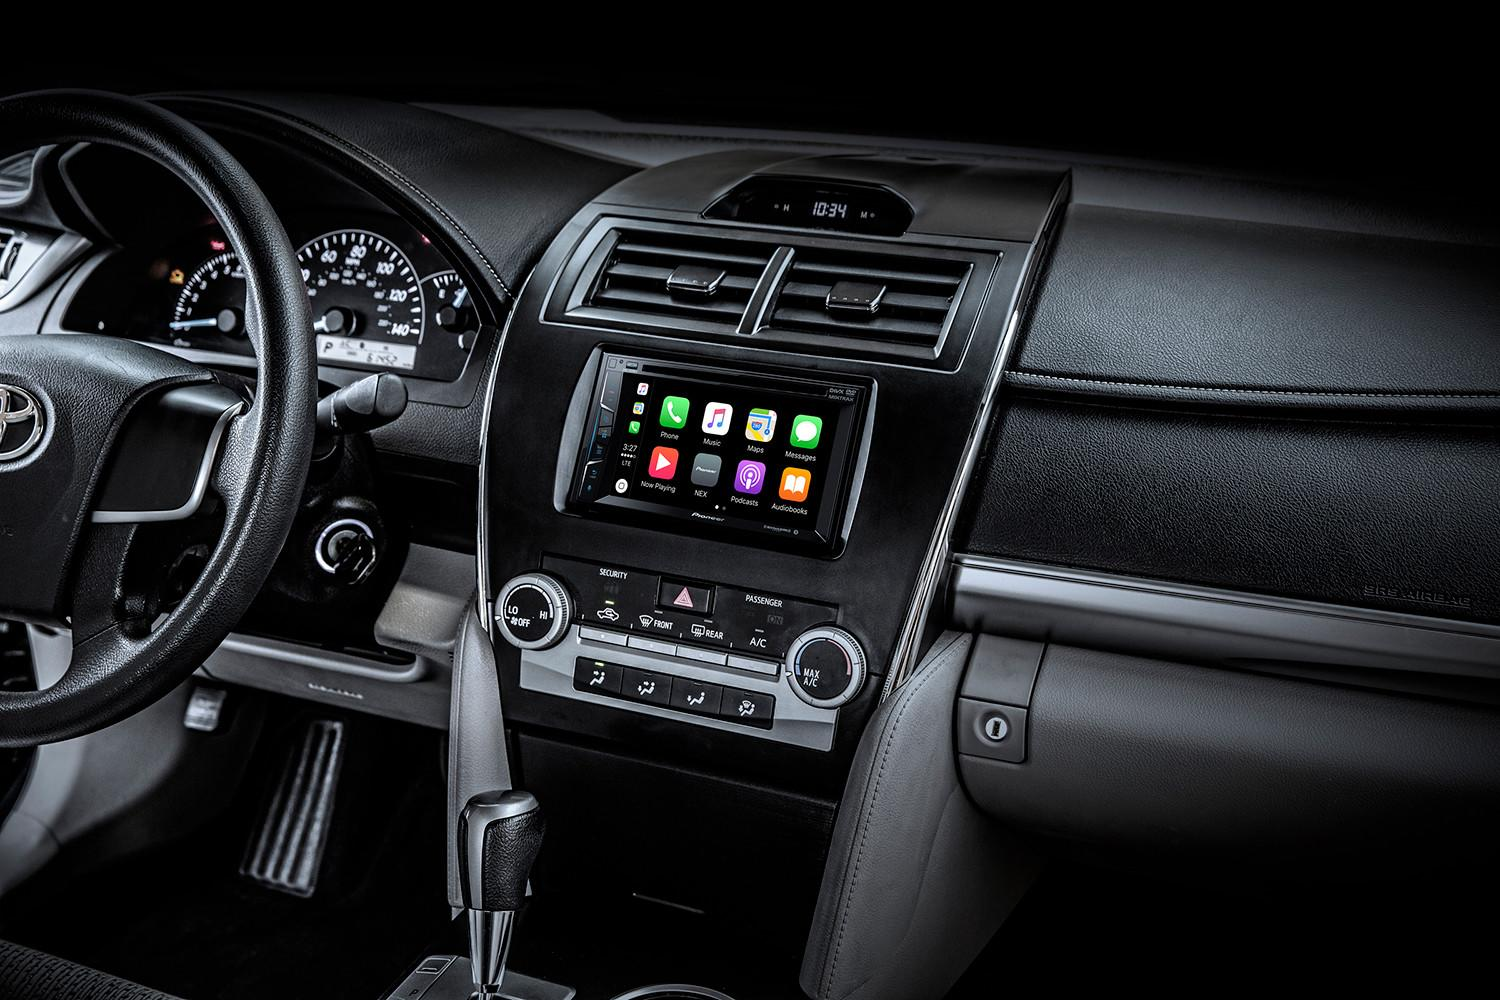 pioneer 39 s latest in dash receivers bring carplay and. Black Bedroom Furniture Sets. Home Design Ideas